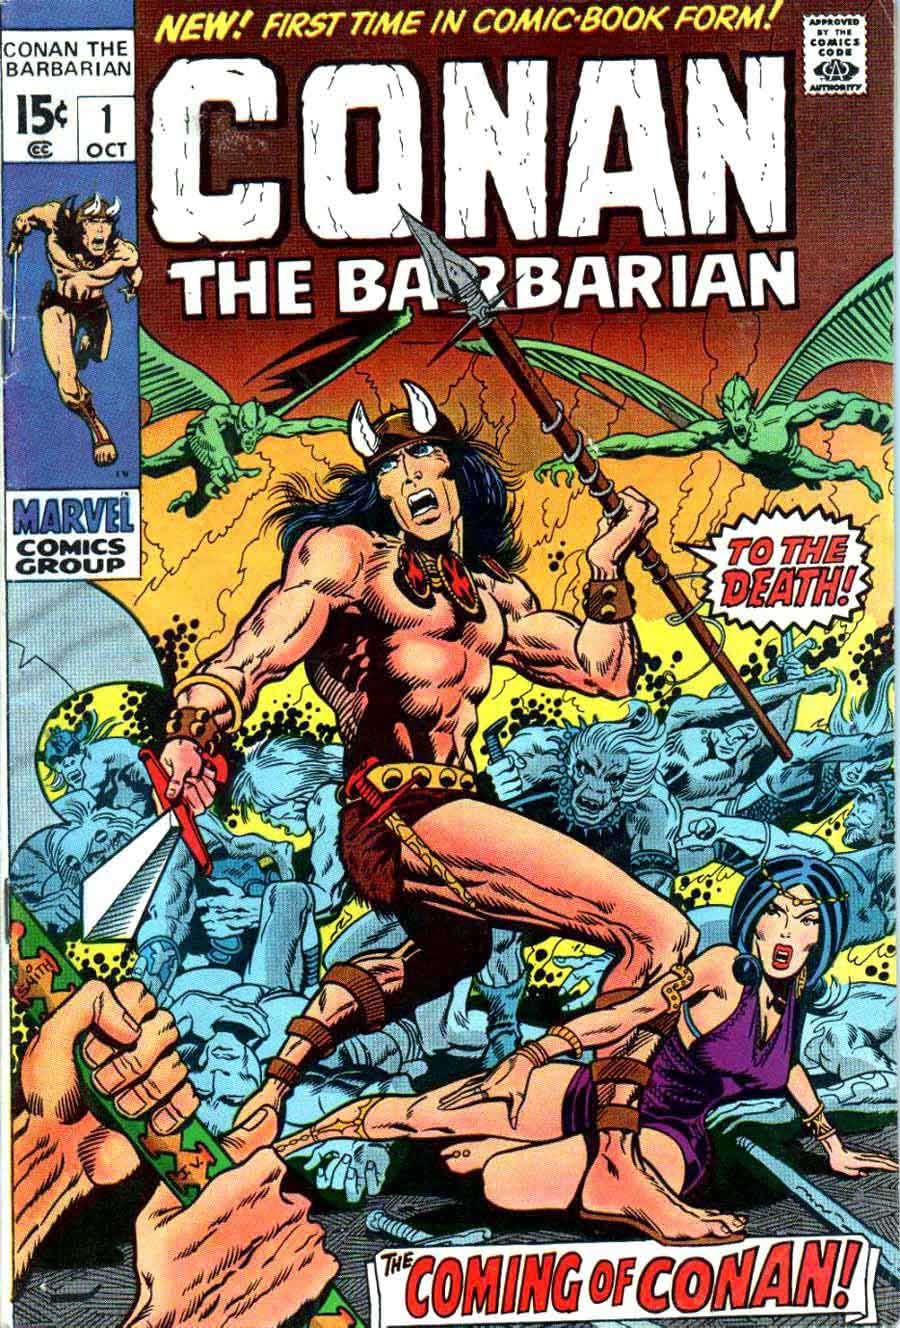 Conan The Barbarian (Barry Windsor-Smith)